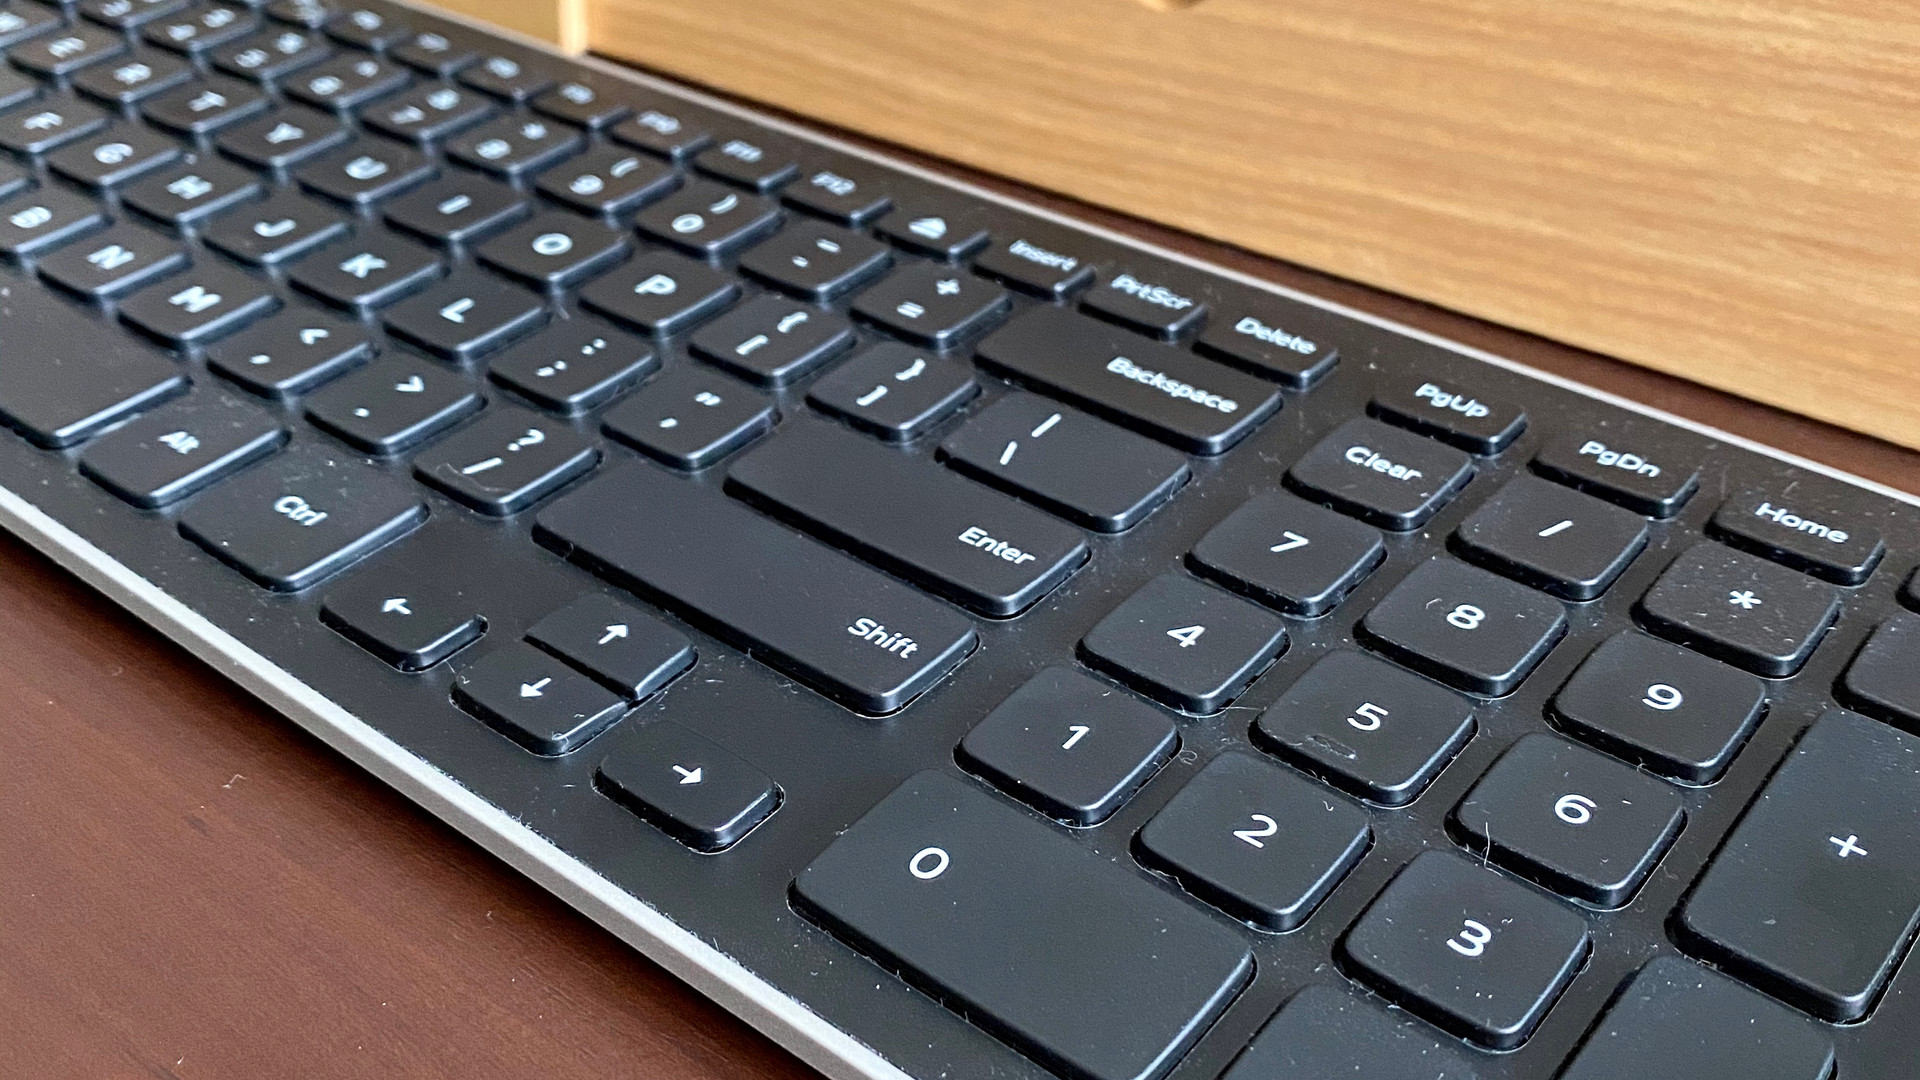 Keyboard in an office